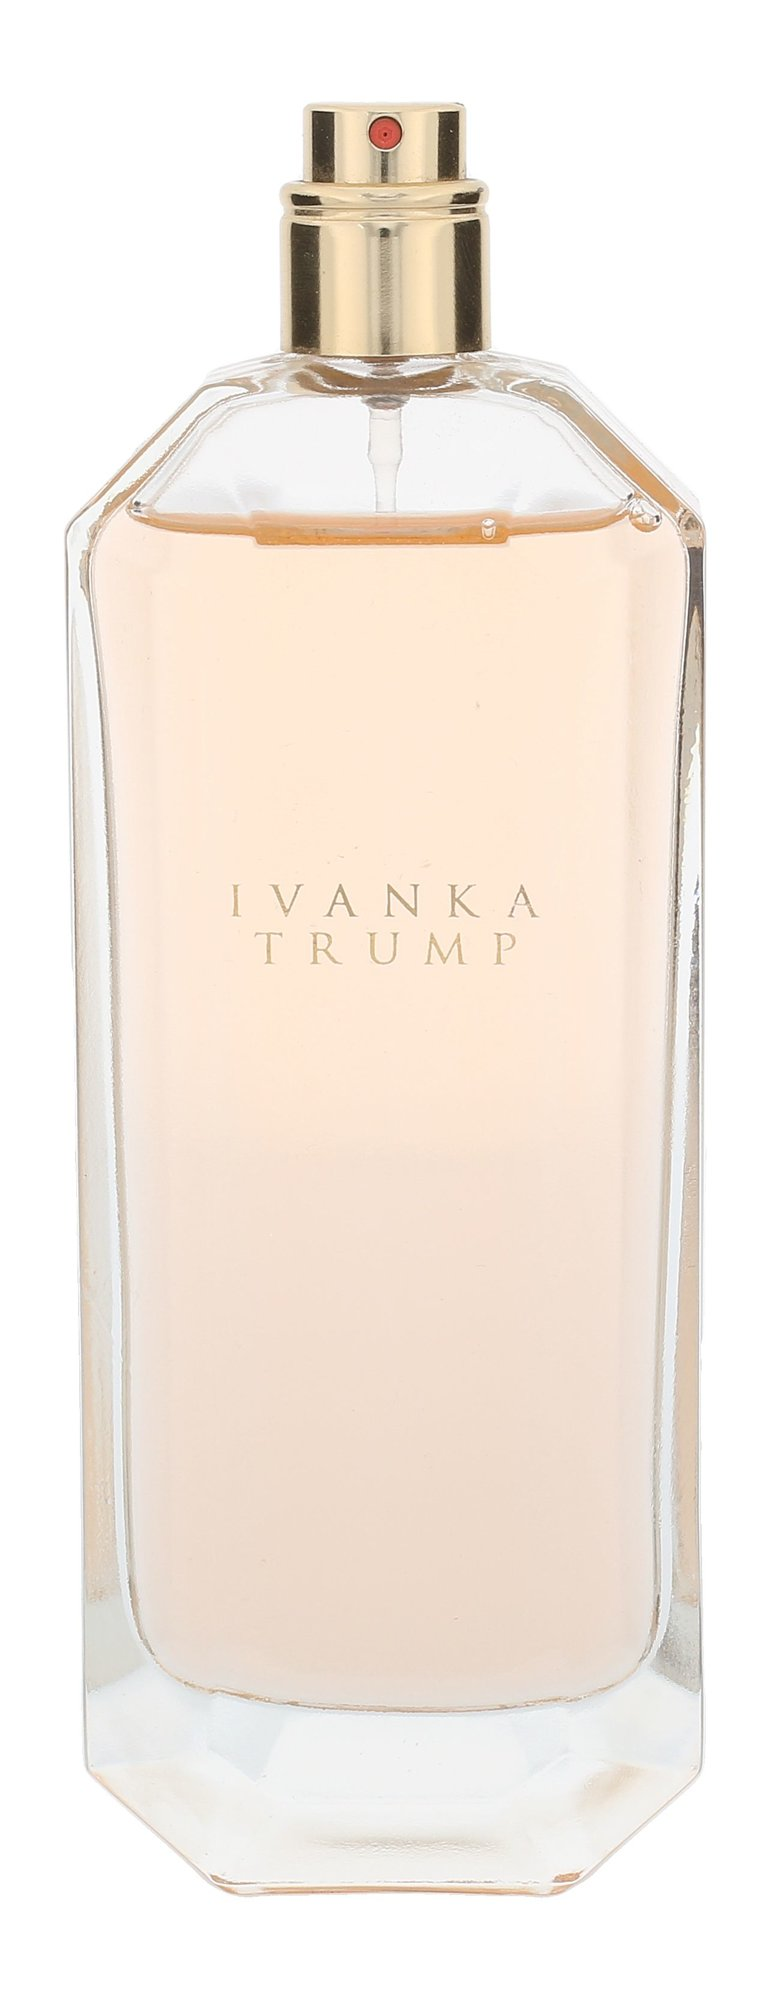 Ivanka Trump Ivanka Trump EDP 100ml